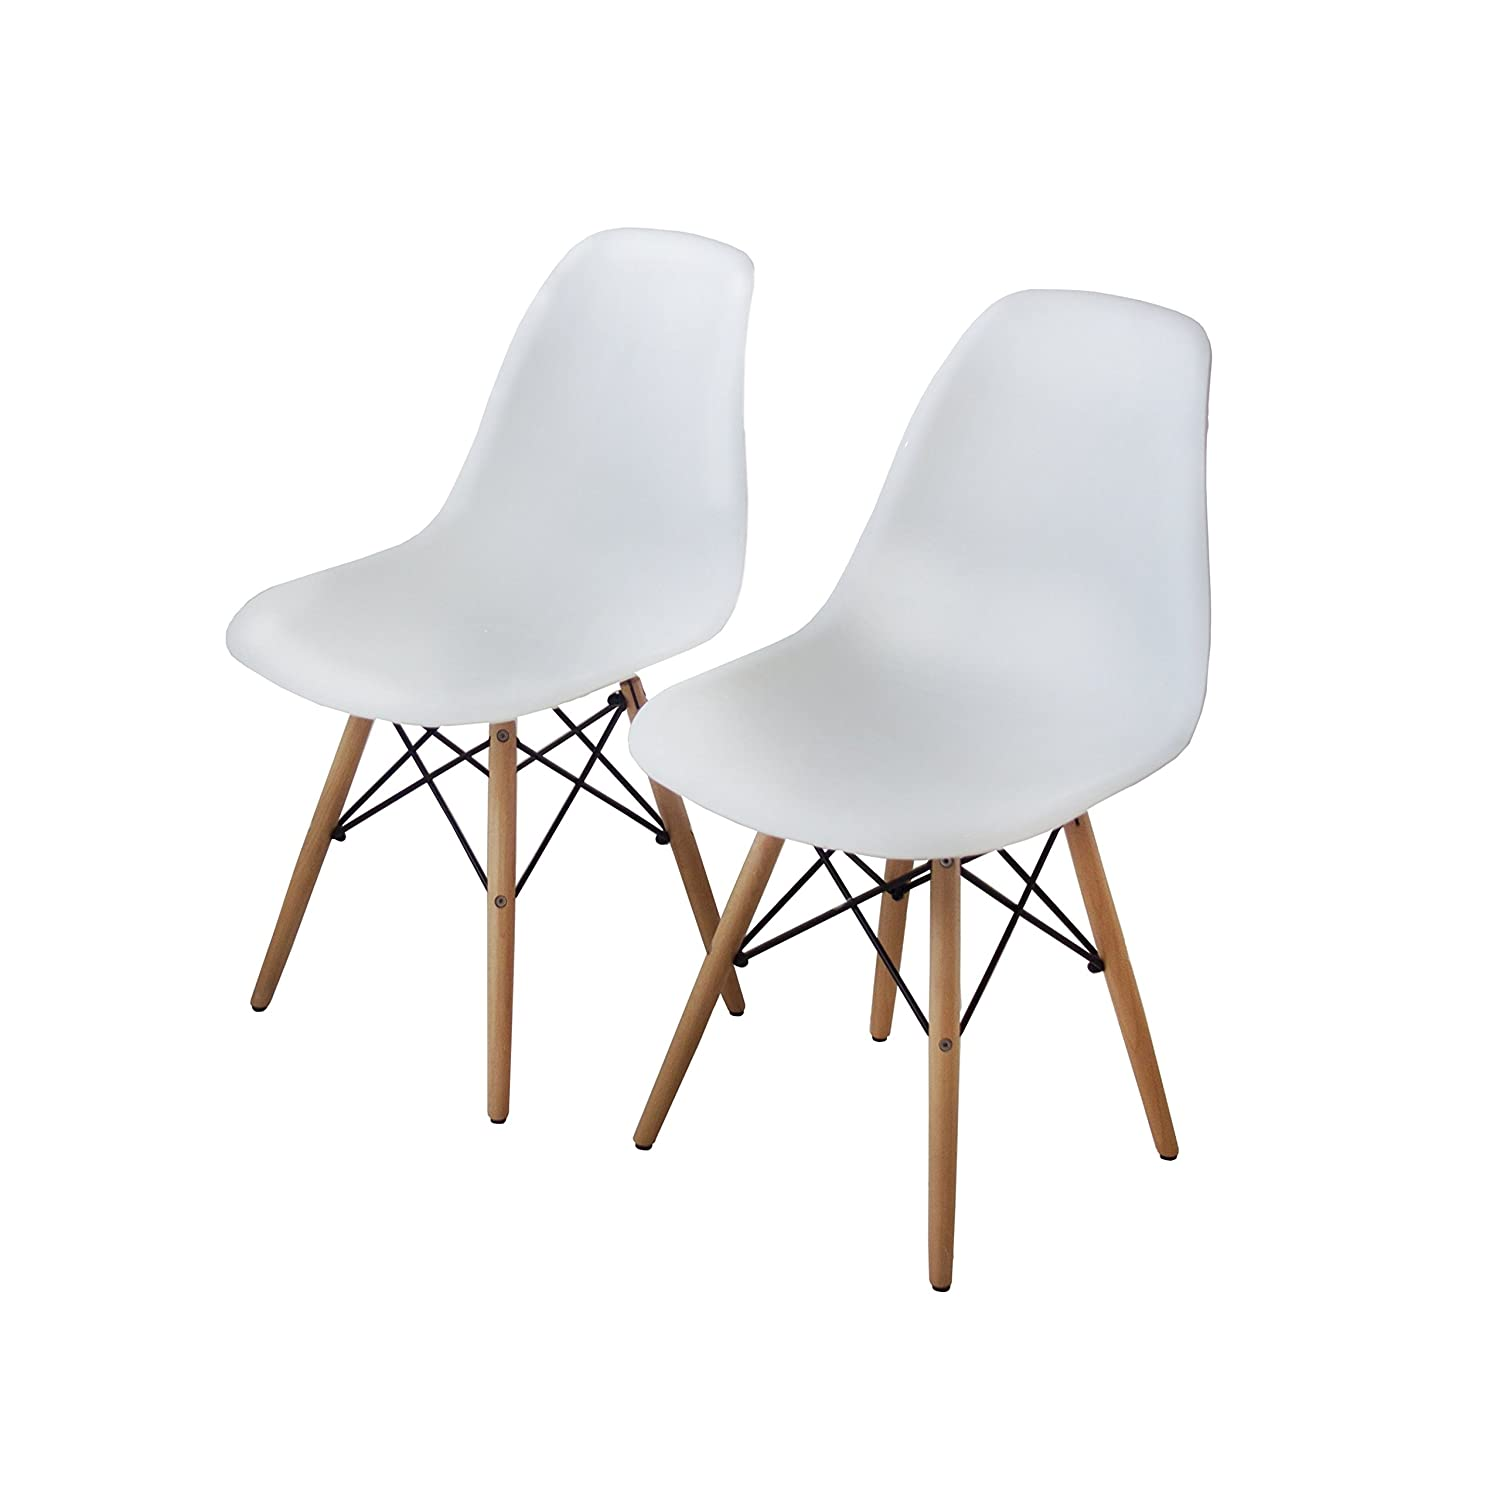 Amazon.com - Buschman Set of Two White Eames-Style Mid Century ...